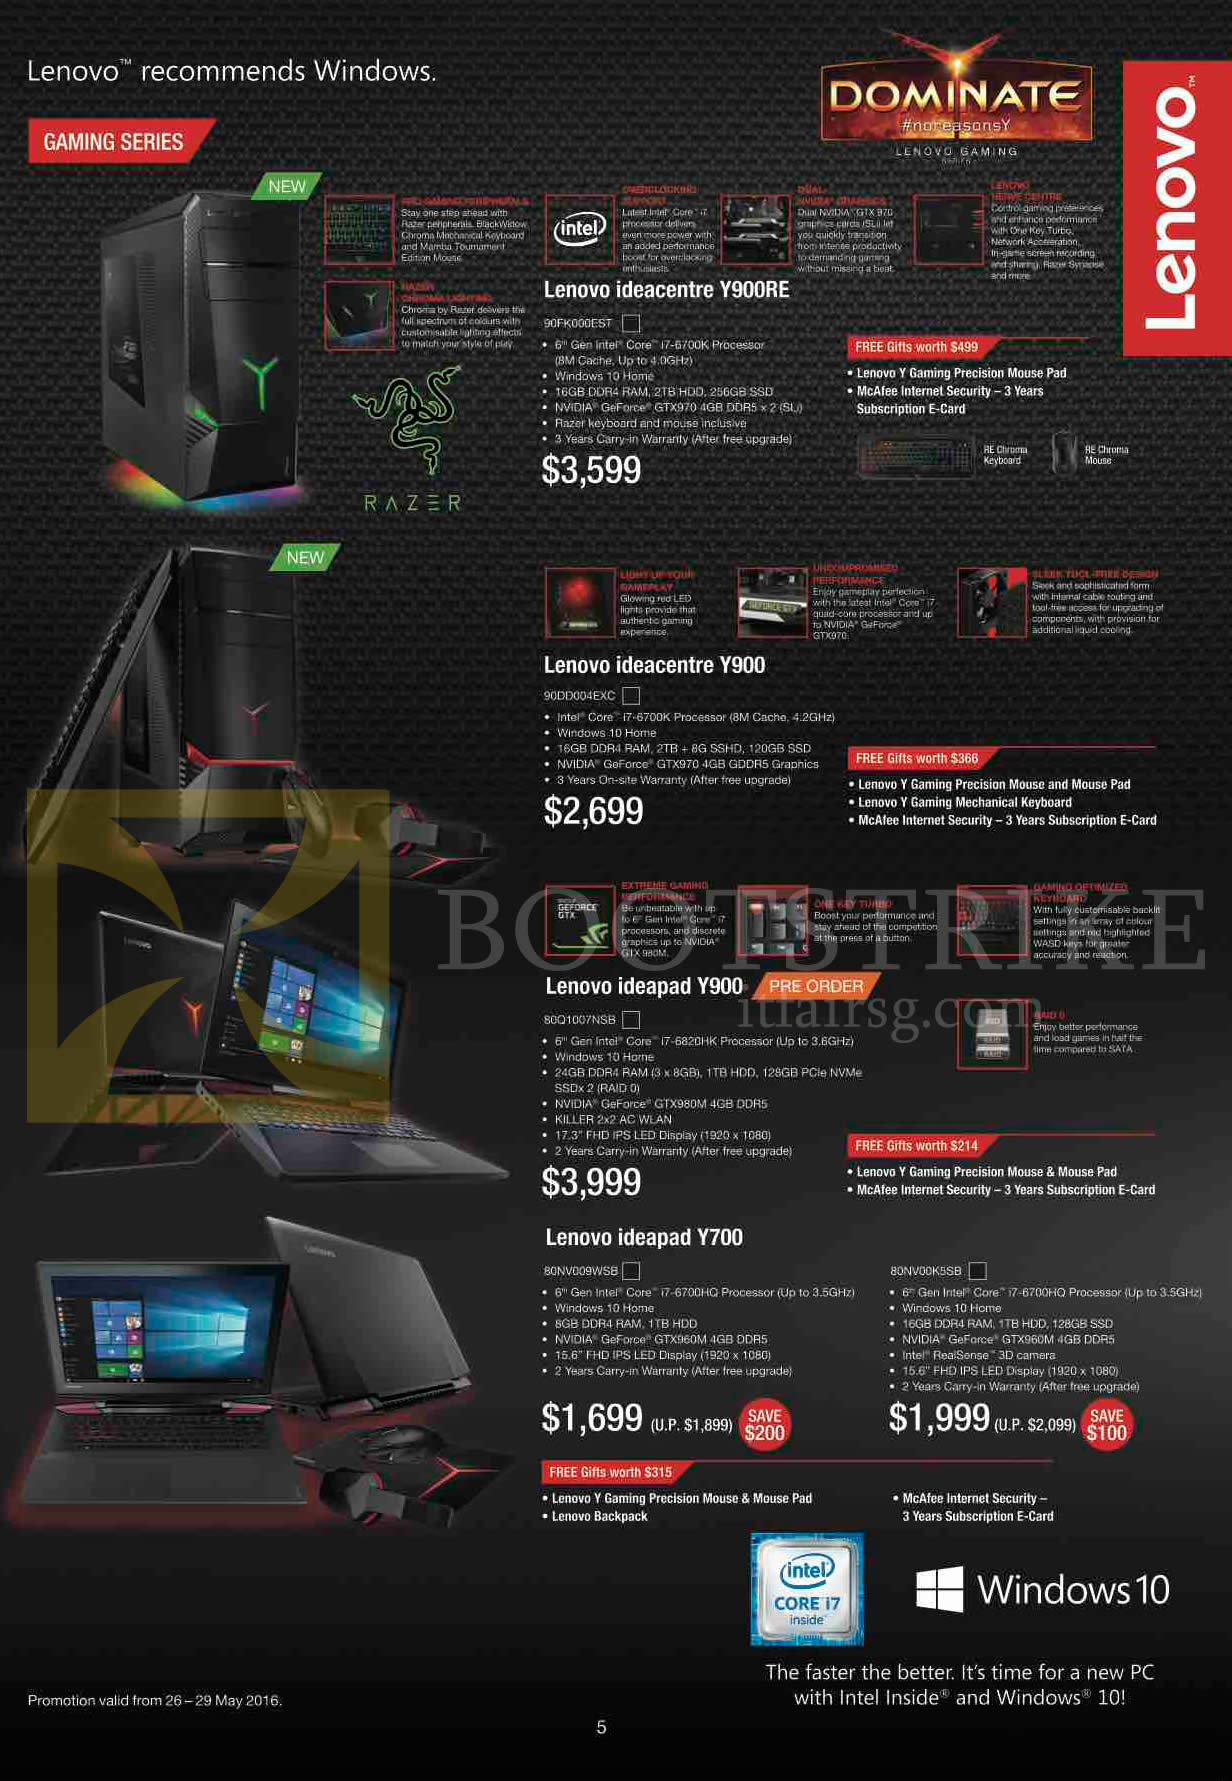 PC SHOW 2016 price list image brochure of Lenovo Desktop PCs Notebooks Gaming Ideacentre Y900RE, Y900, Ideapad Y900, Y700